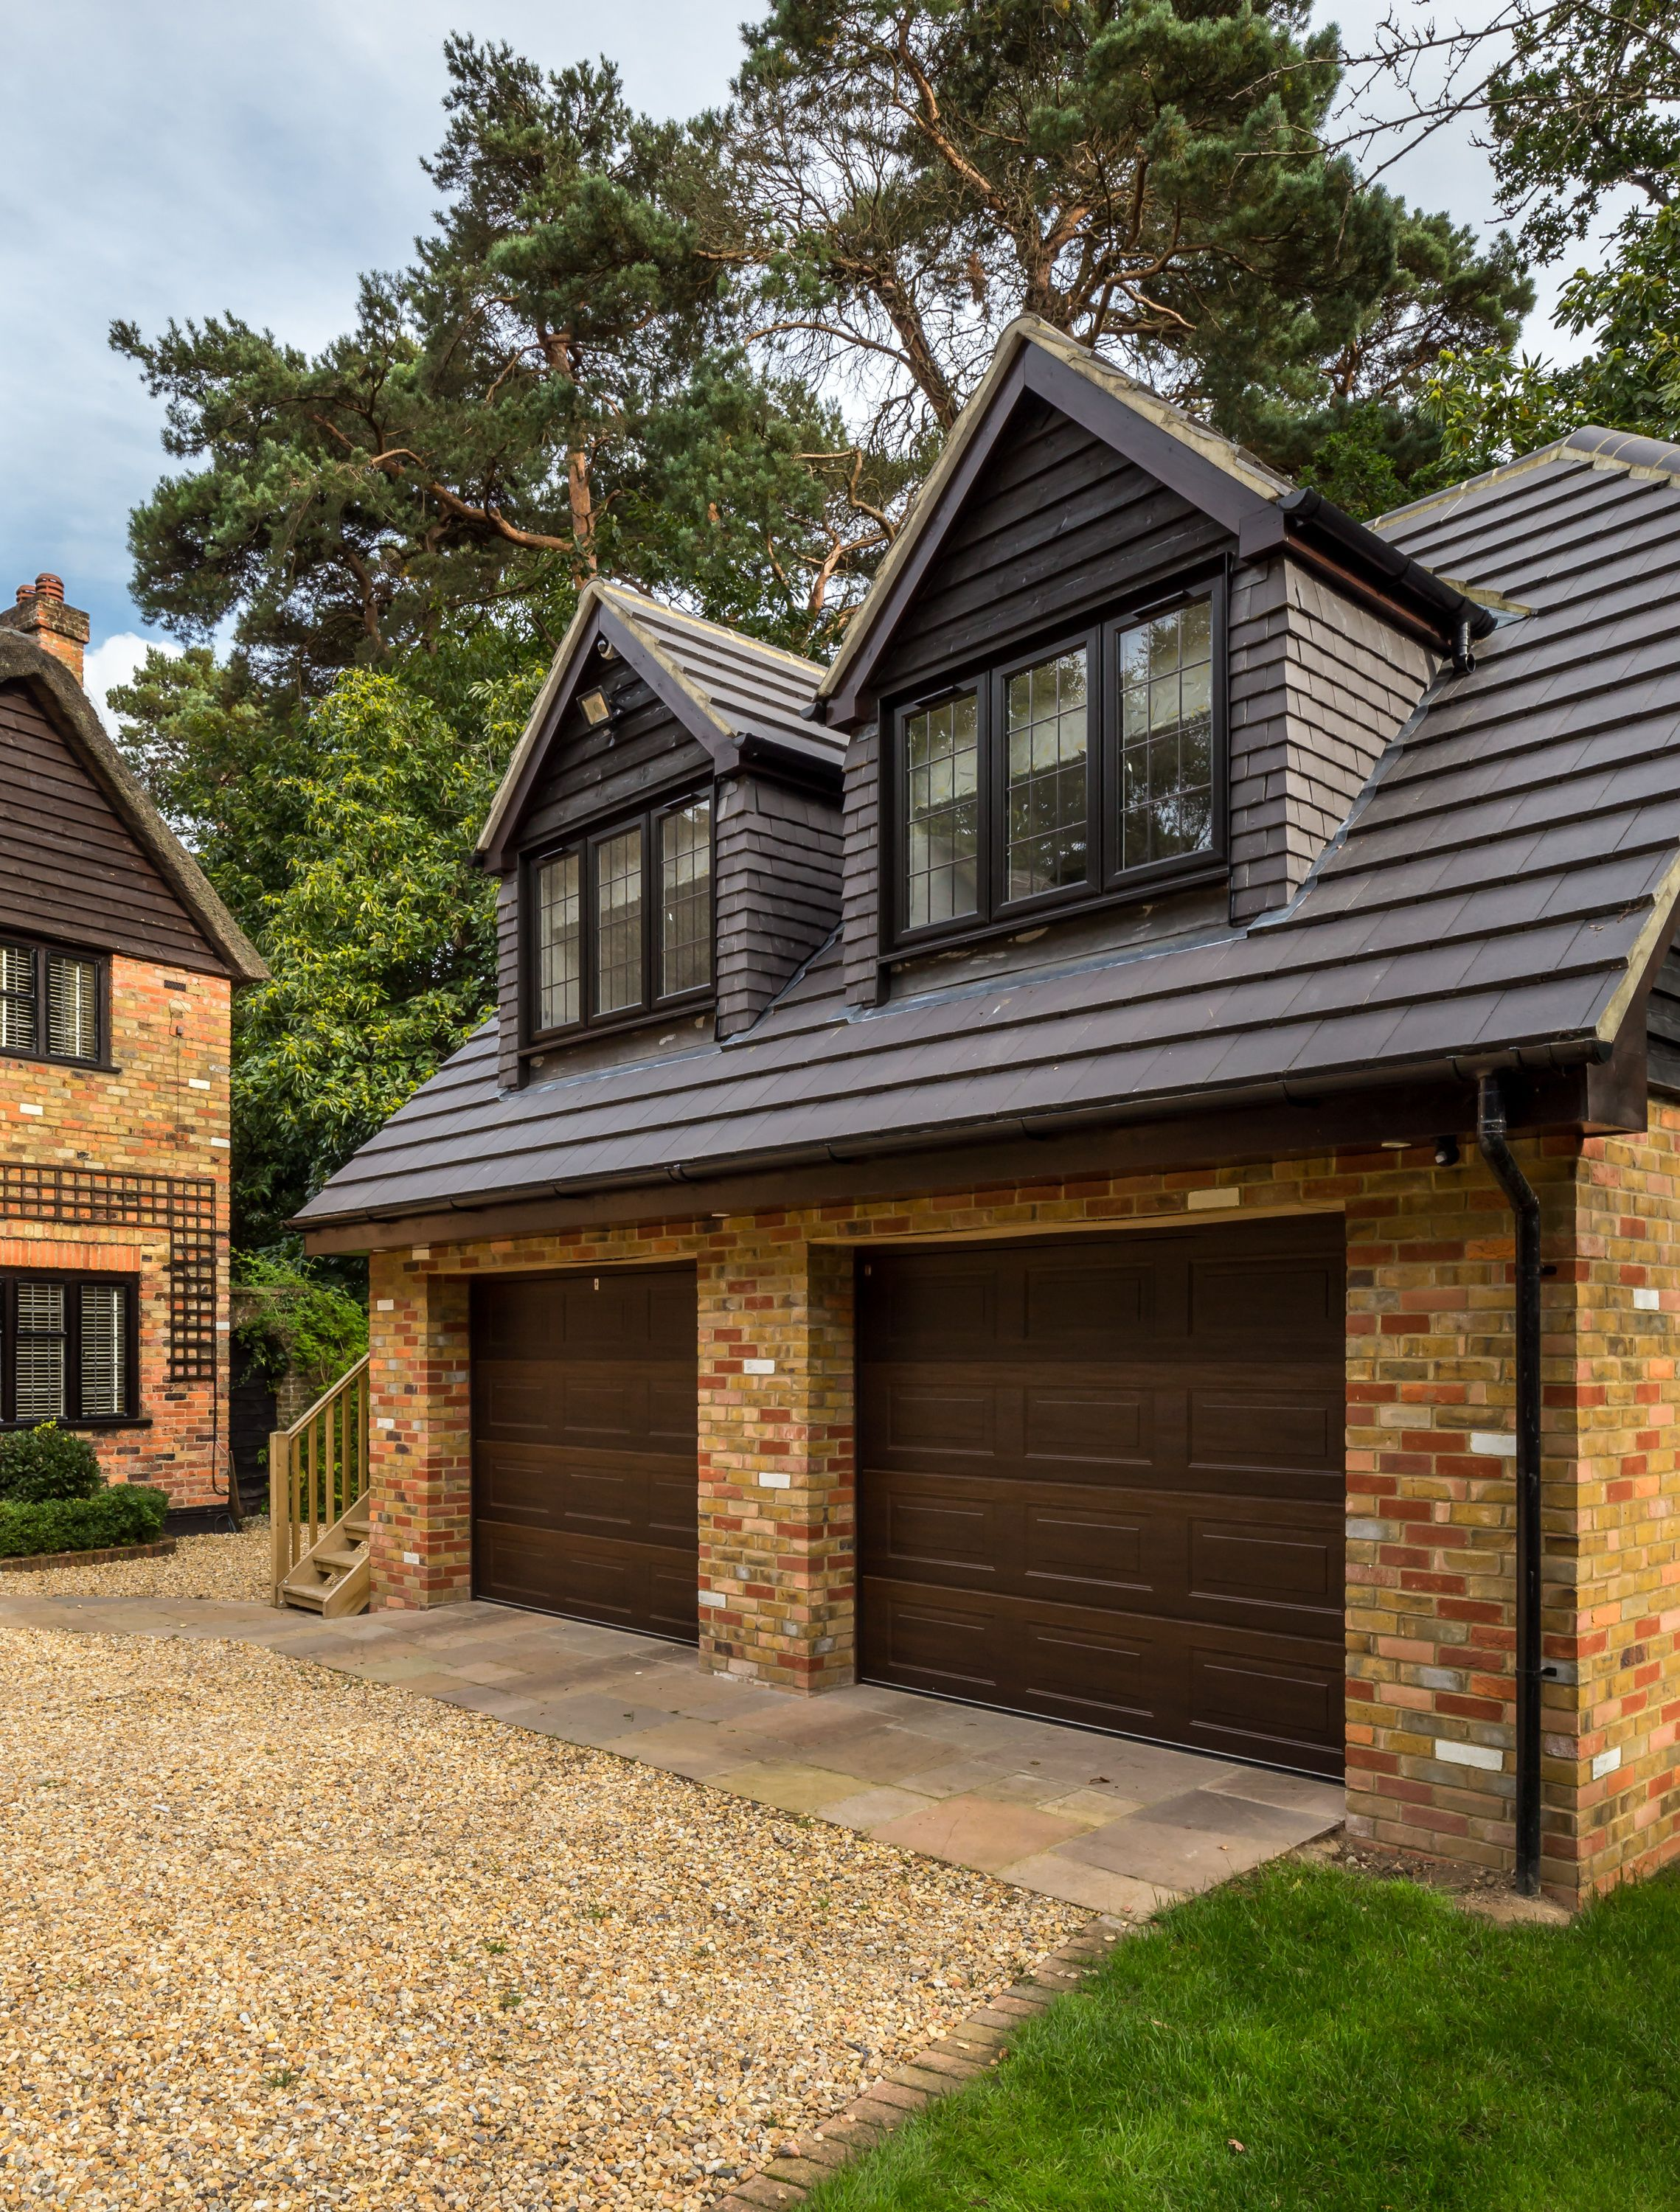 Building A Shed Dormer House Addition Ideas For Extra Living Space: Traditional Double Garage With Room In Loft Space